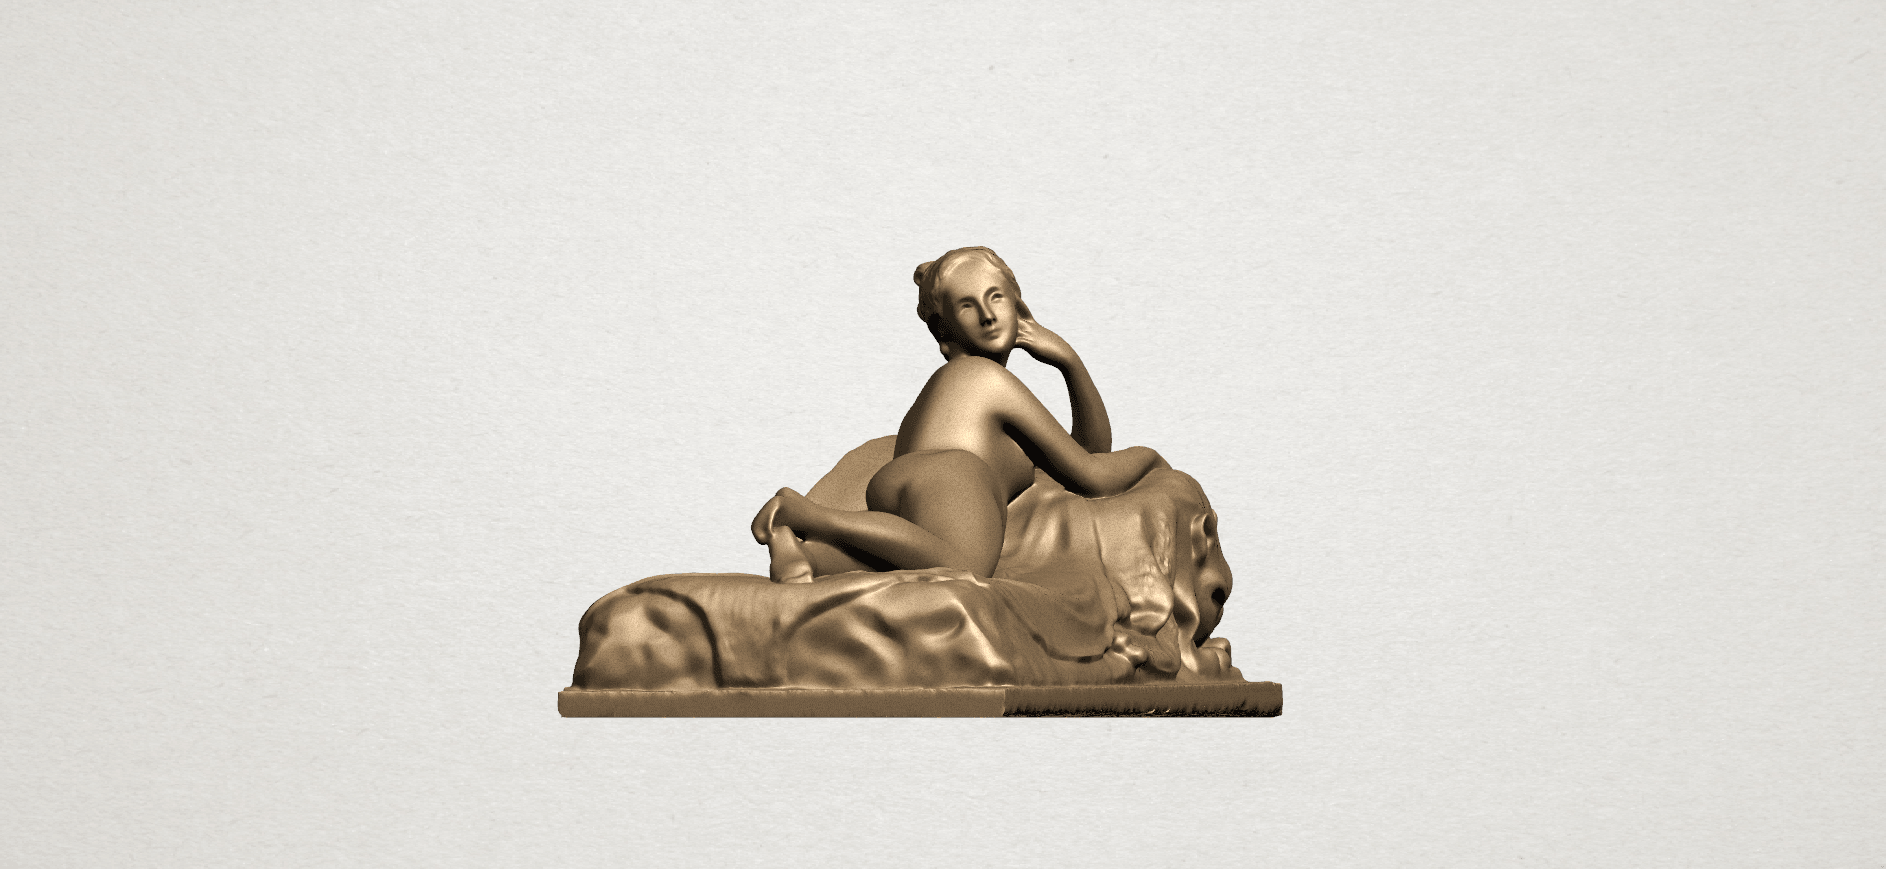 Lying on Bed (i) A05.png Download free STL file Naked Girl - Lying on Bed 01 • 3D printable object, GeorgesNikkei